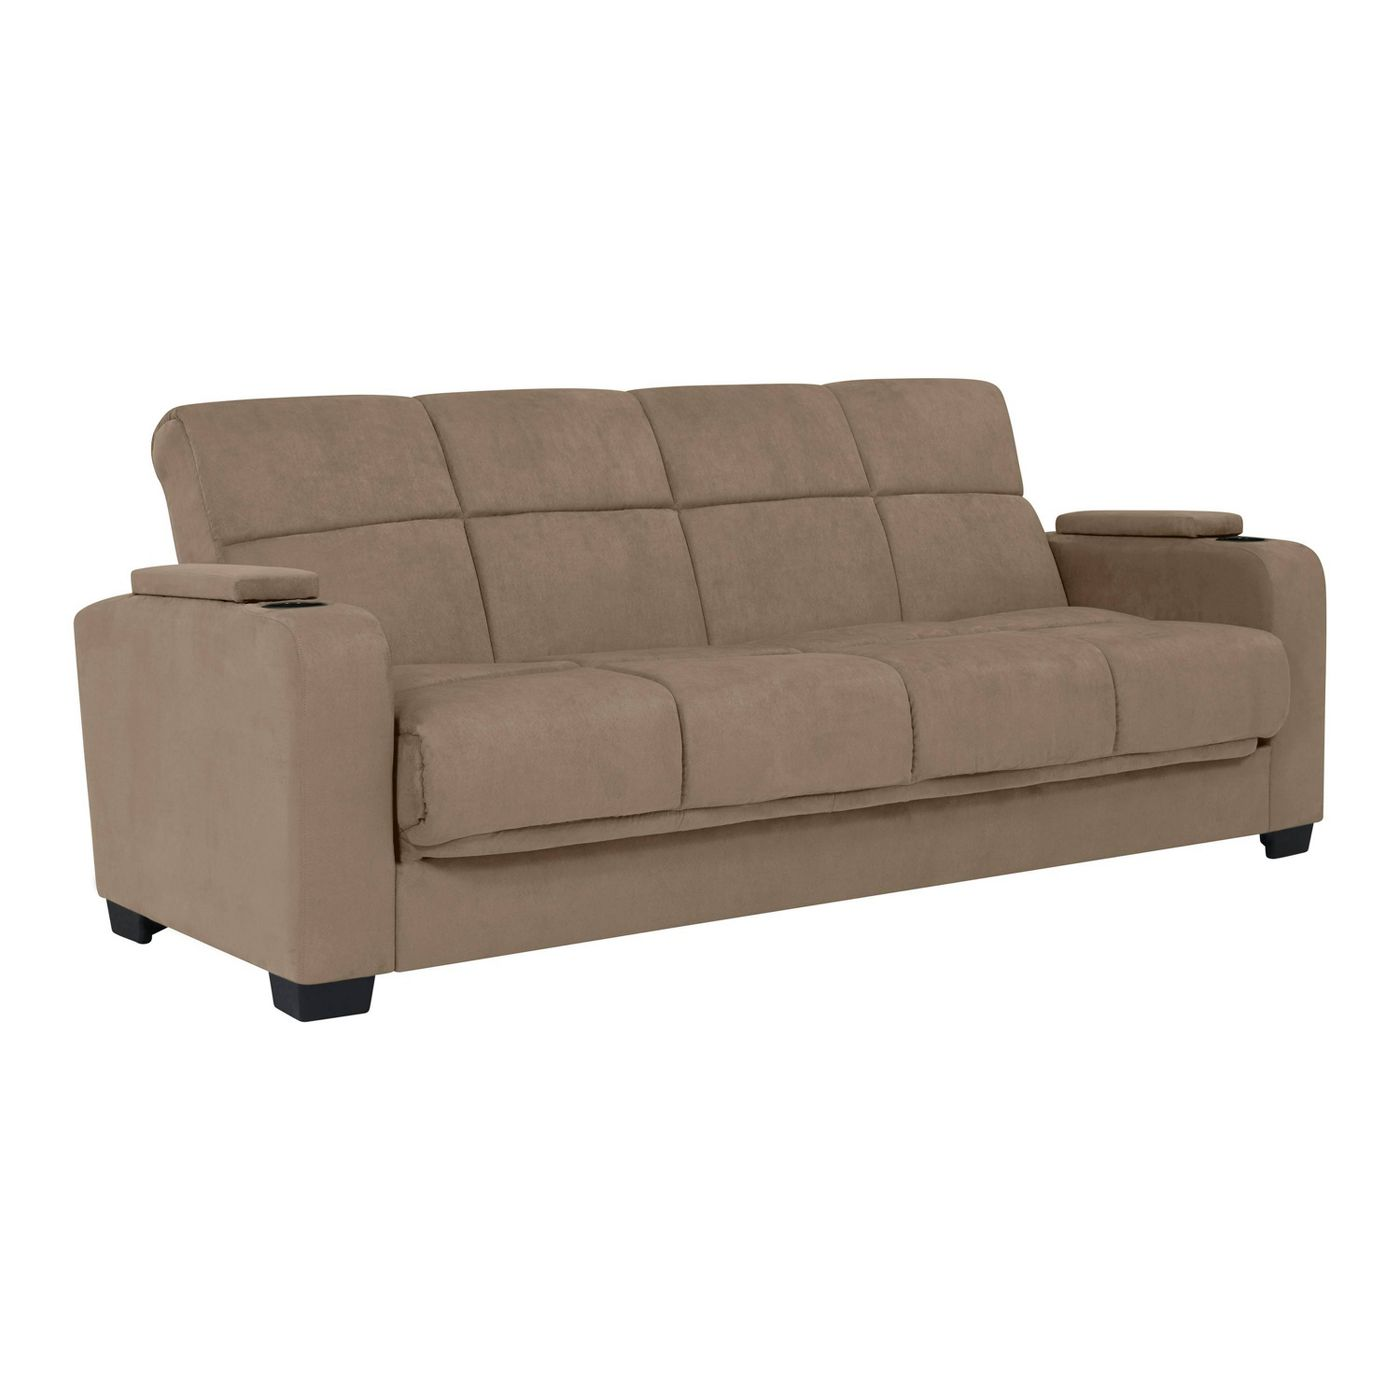 Handy Living Convert-a-Couch Full-Size Sleeper Sofa